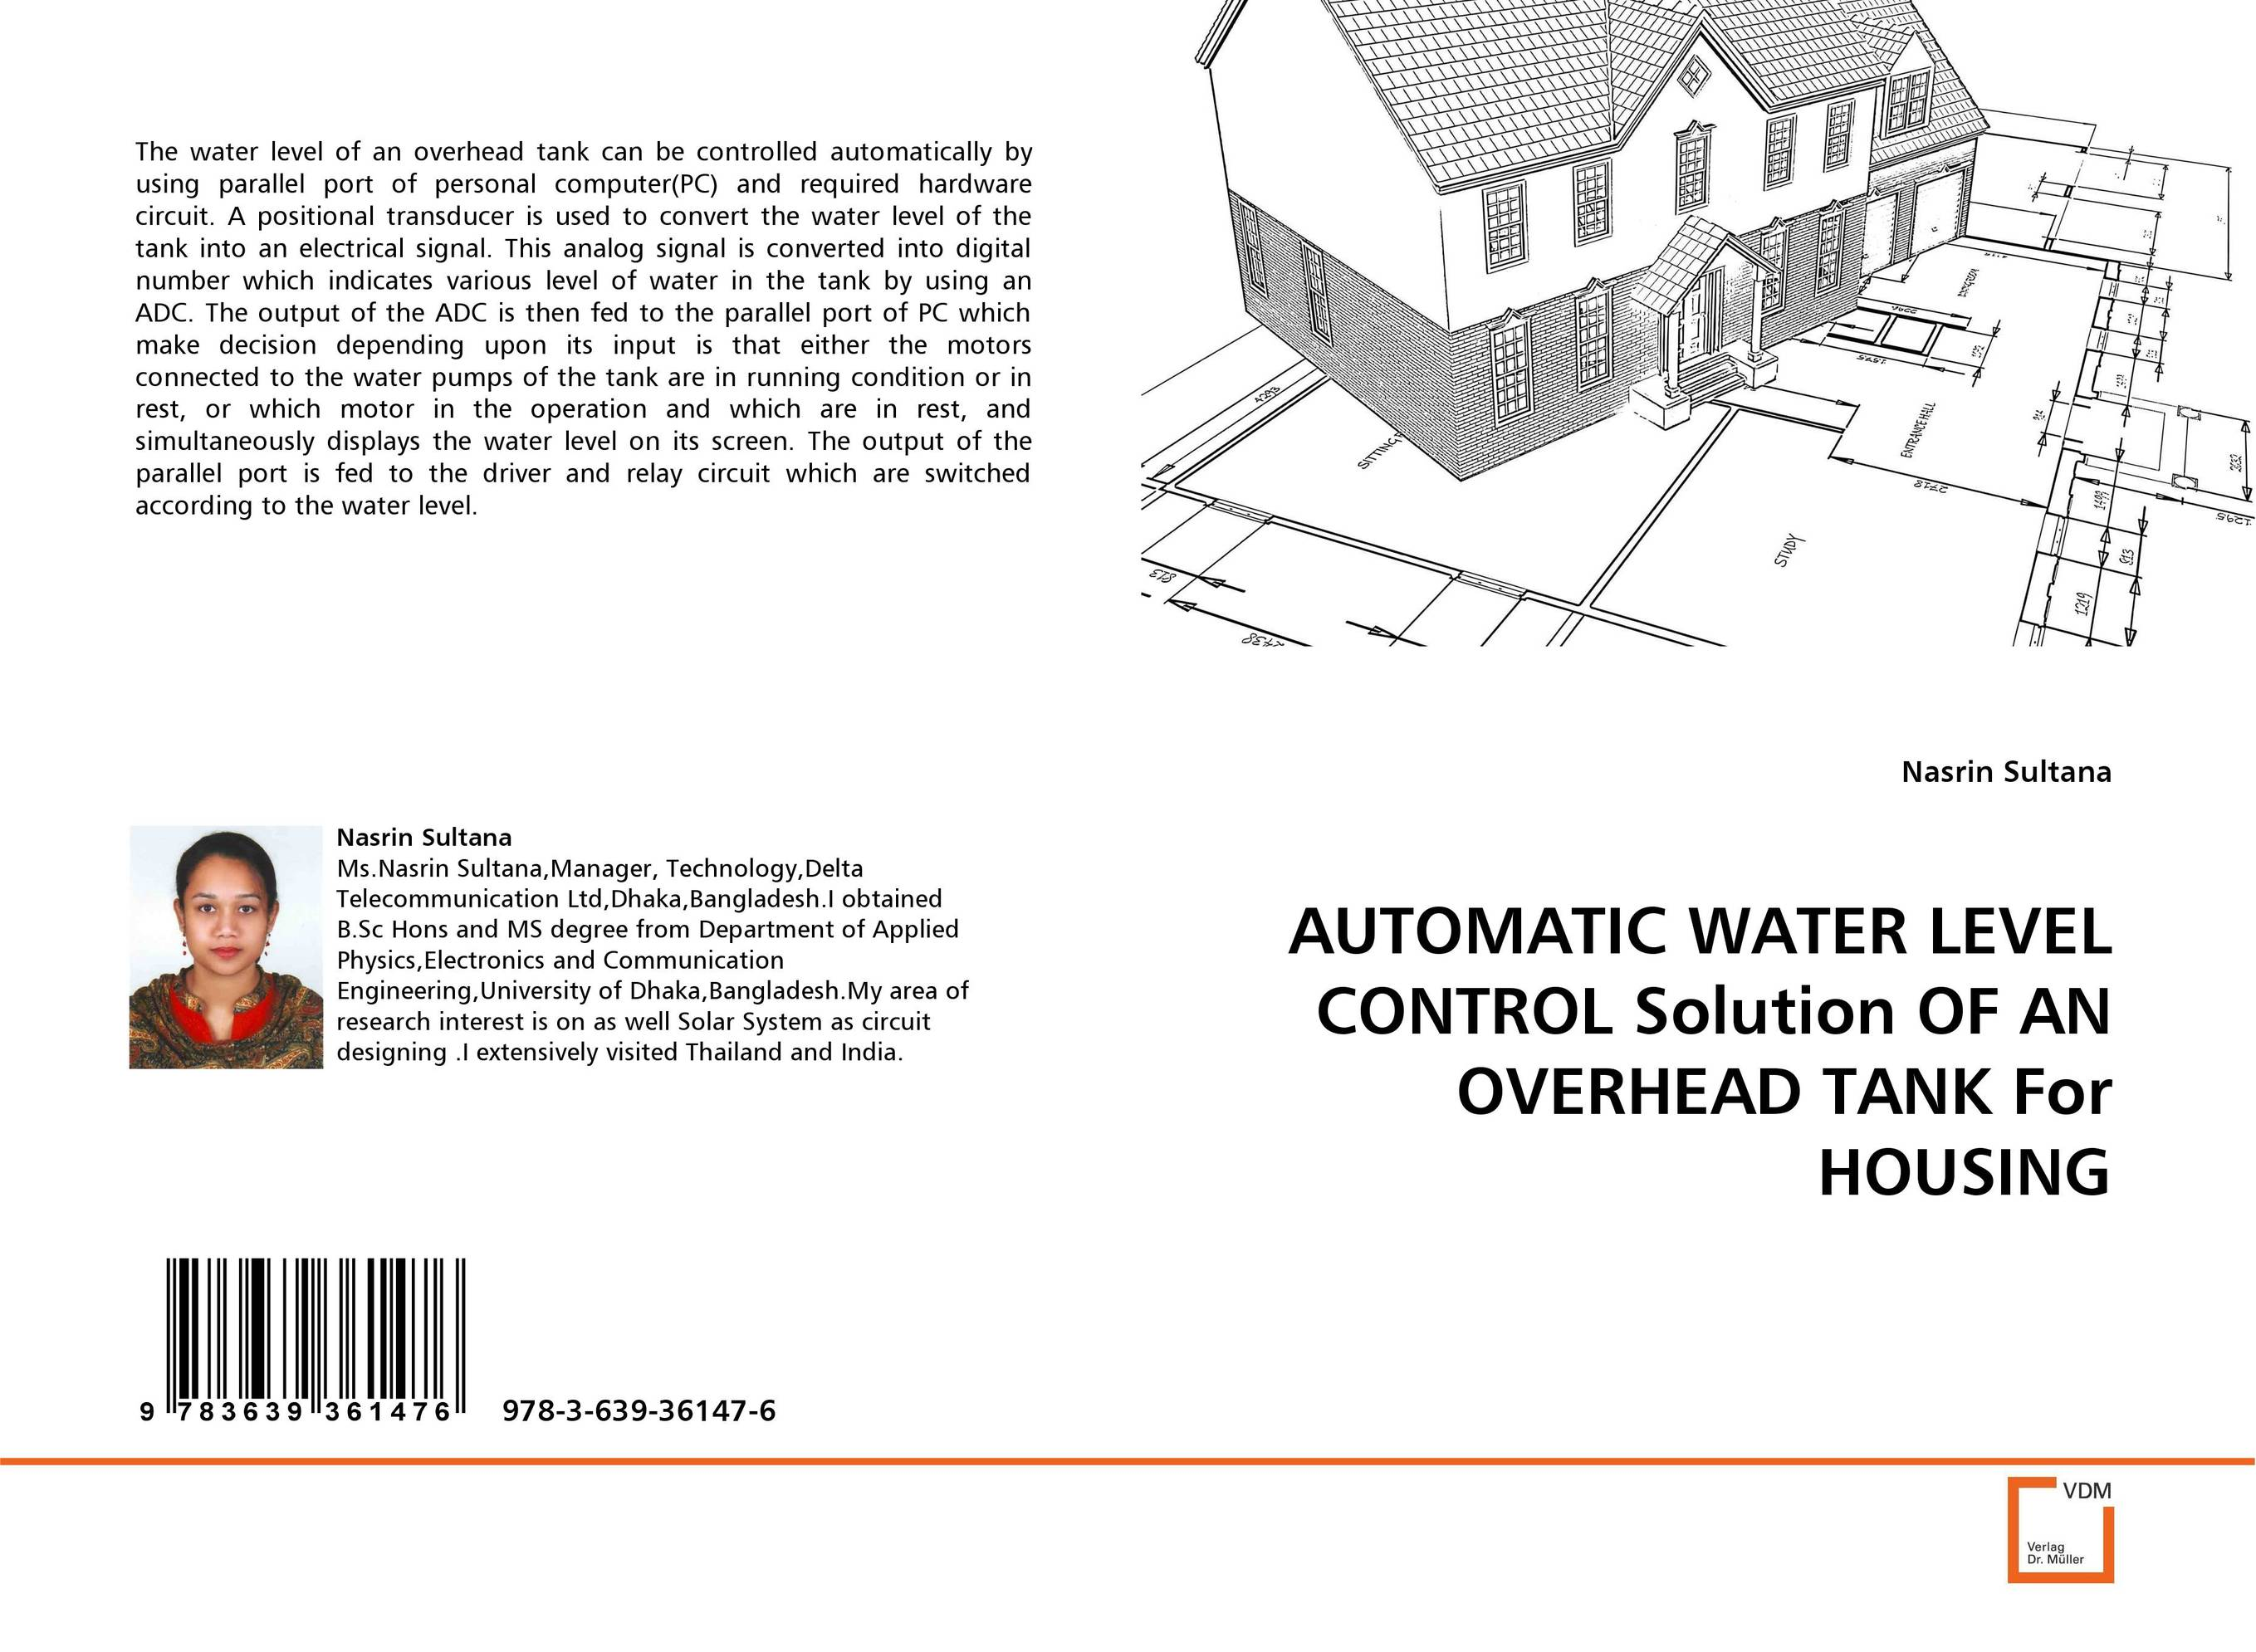 AUTOMATIC WATER LEVEL CONTROL Solution OF AN OVERHEAD TANK For HOUSING automatic water level control solution of an overhead tank for housing